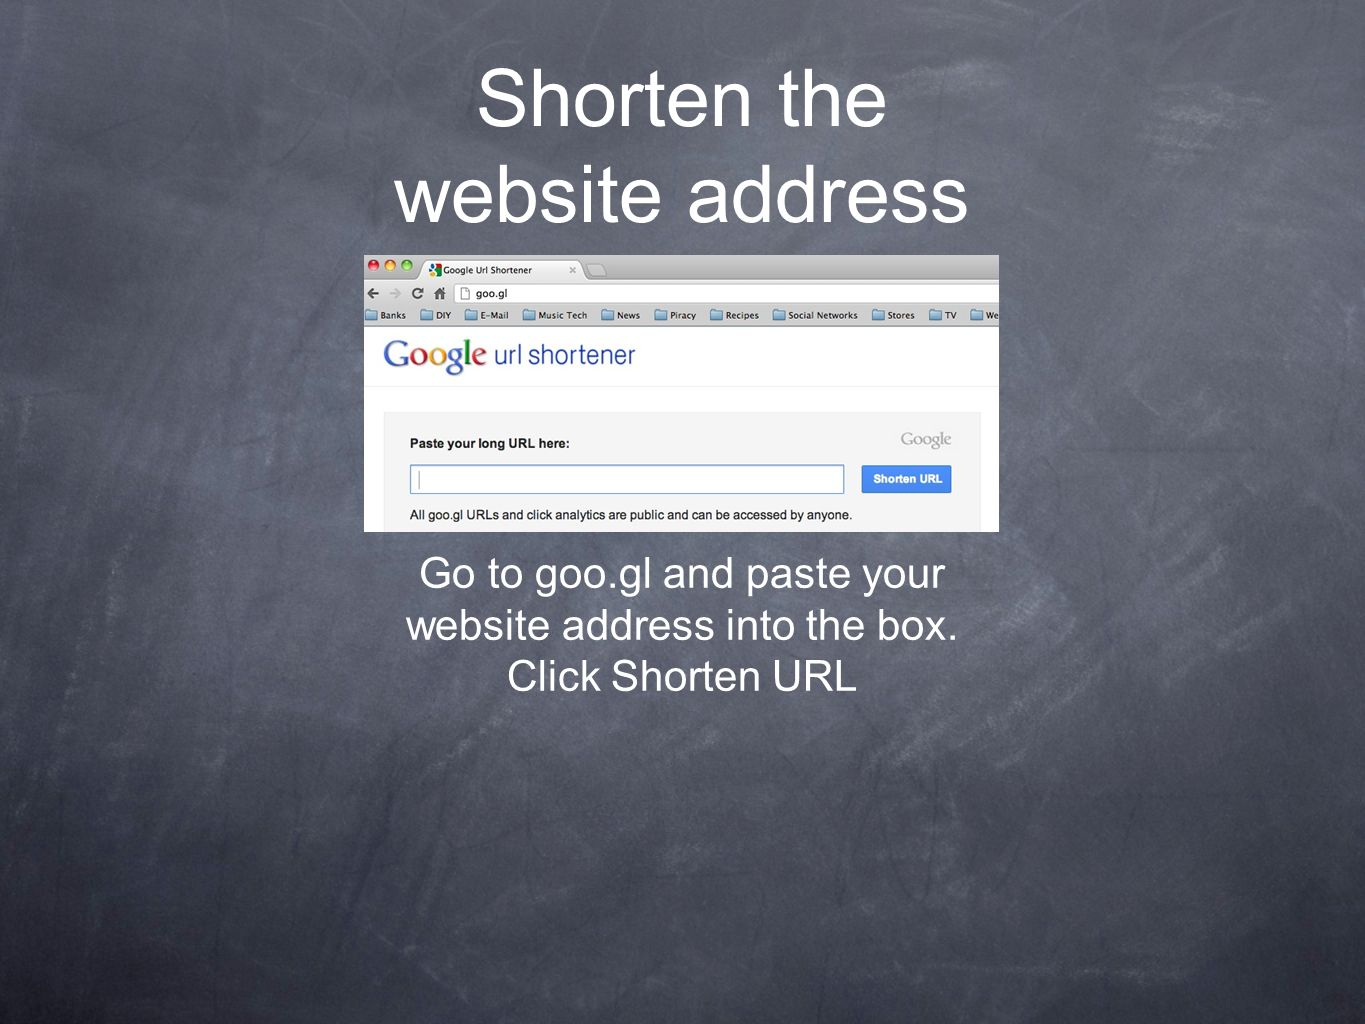 Shorten the website address Go to goo.gl and paste your website address into the box.